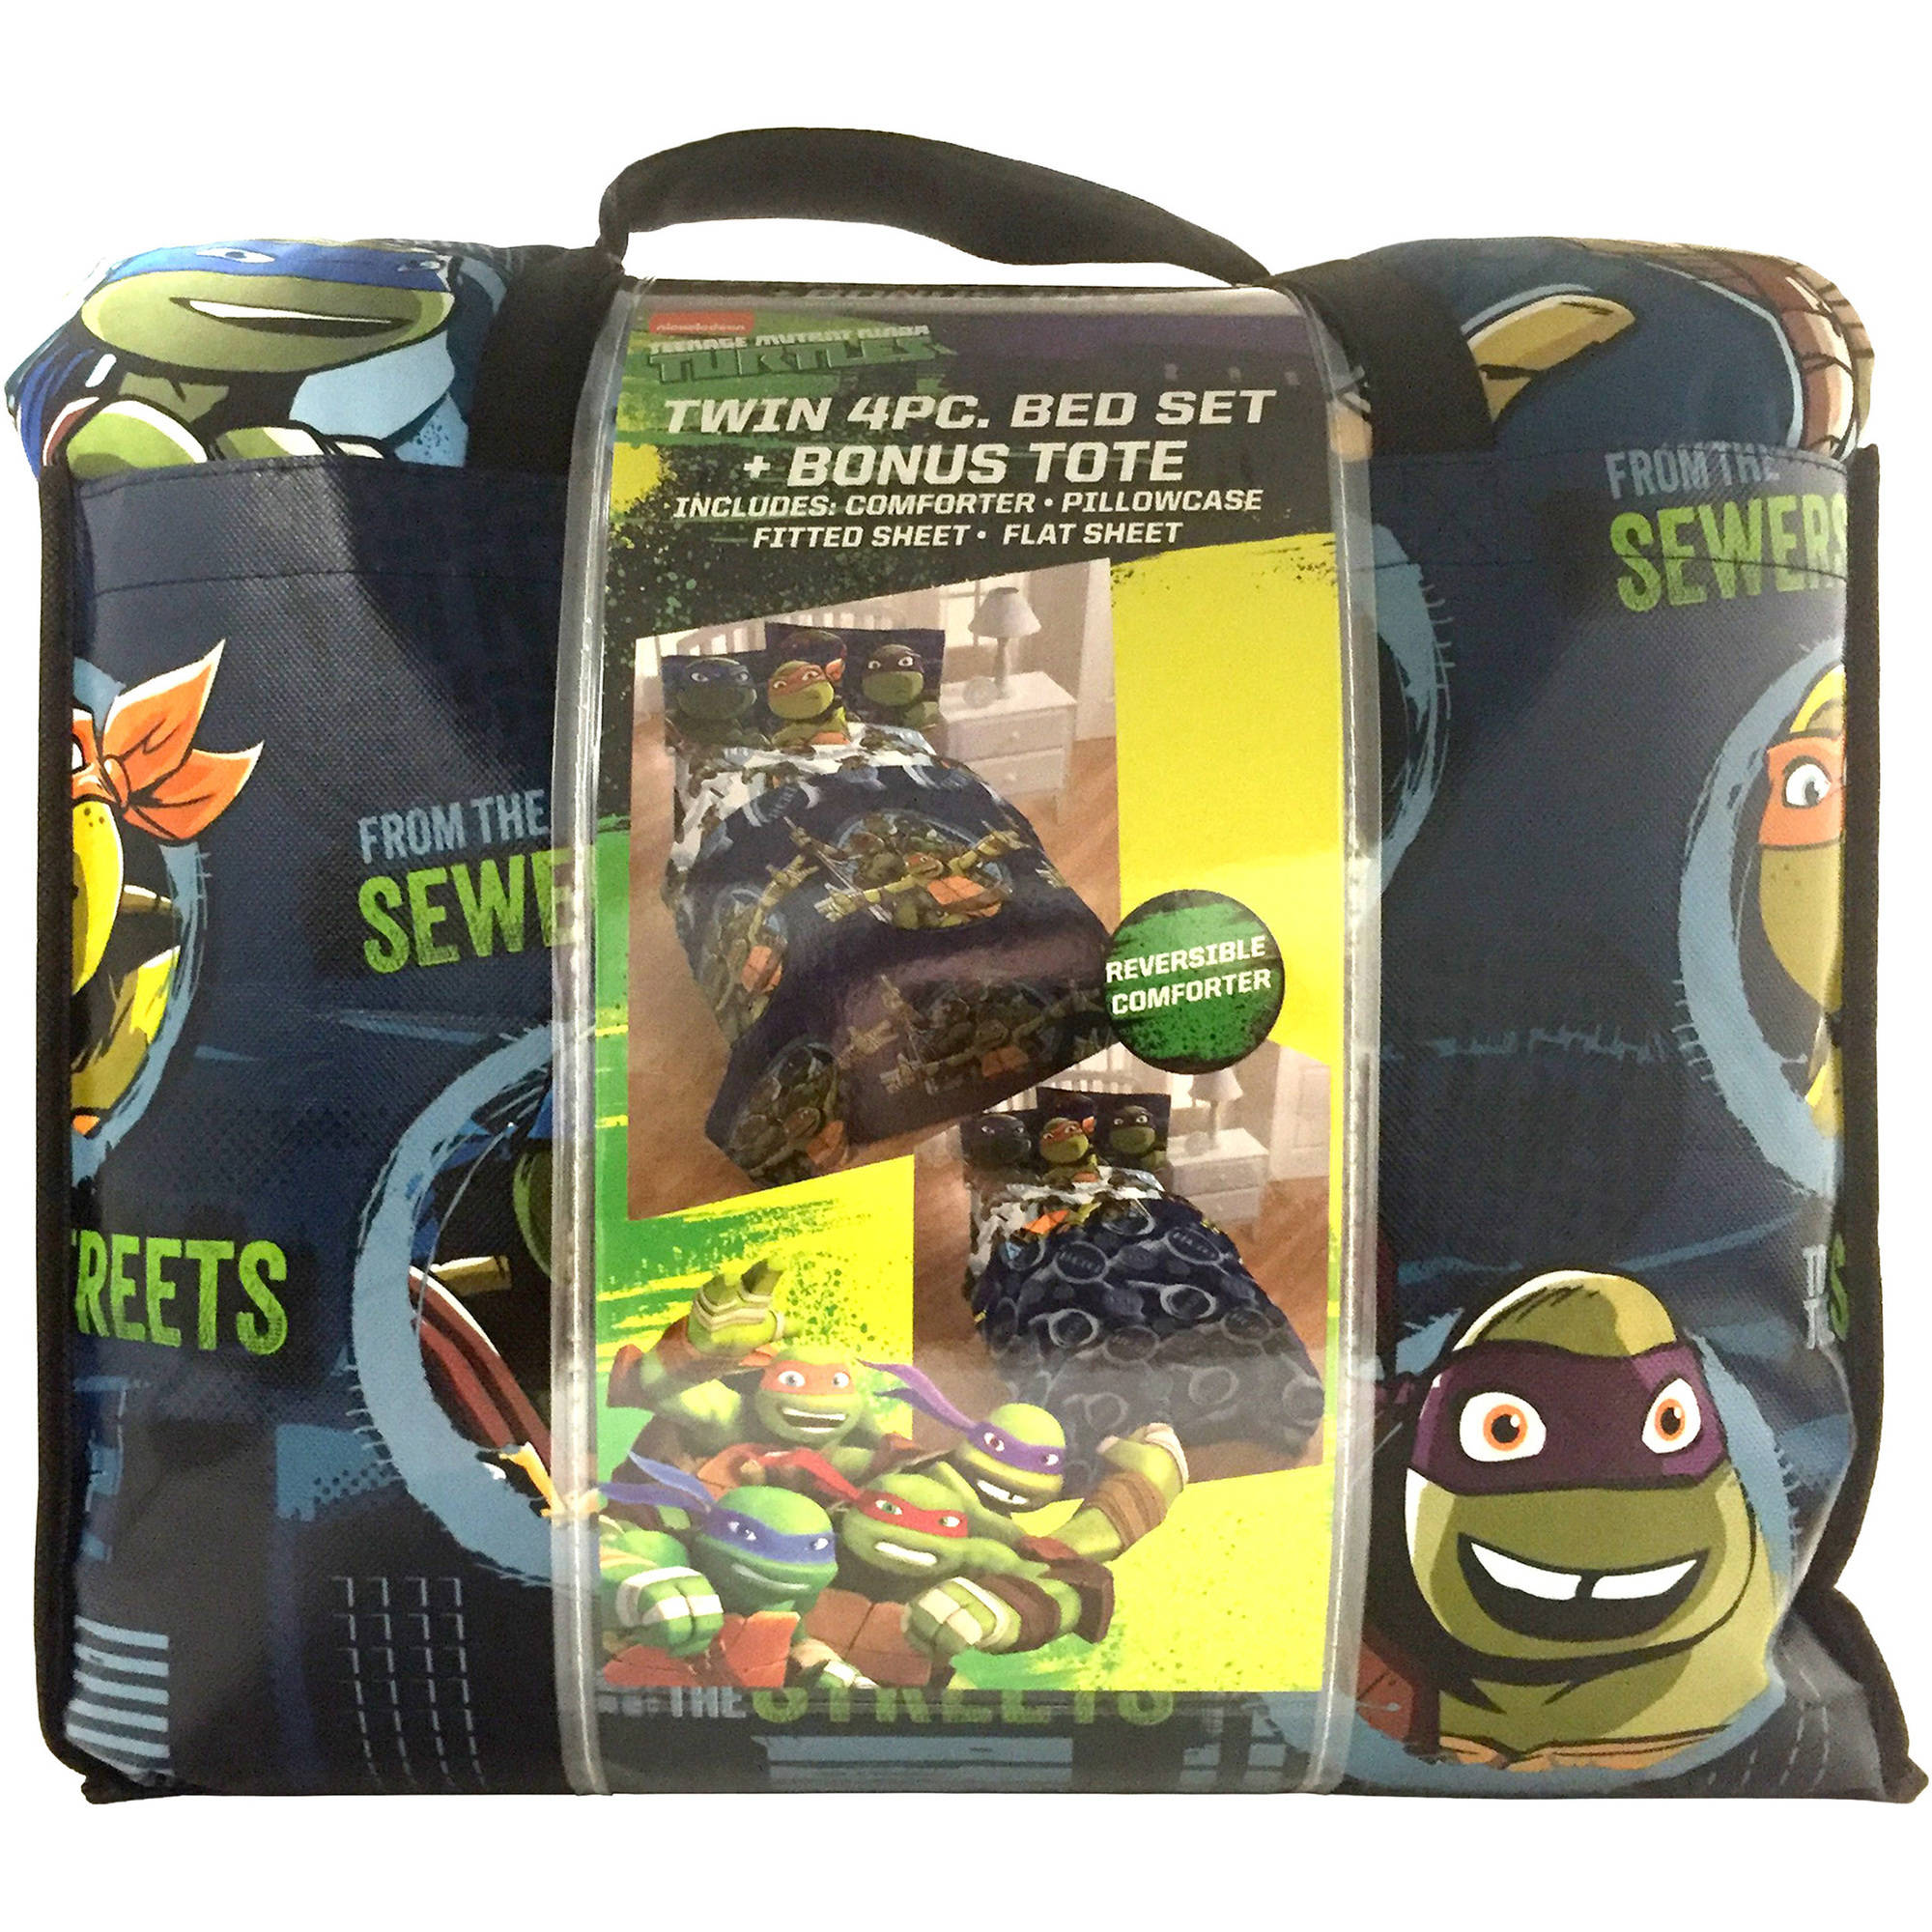 Nickelodeon Age Mutant Ninja Turtle Bed In A Bag 5 Piece Bedding Set With Bonus Tote